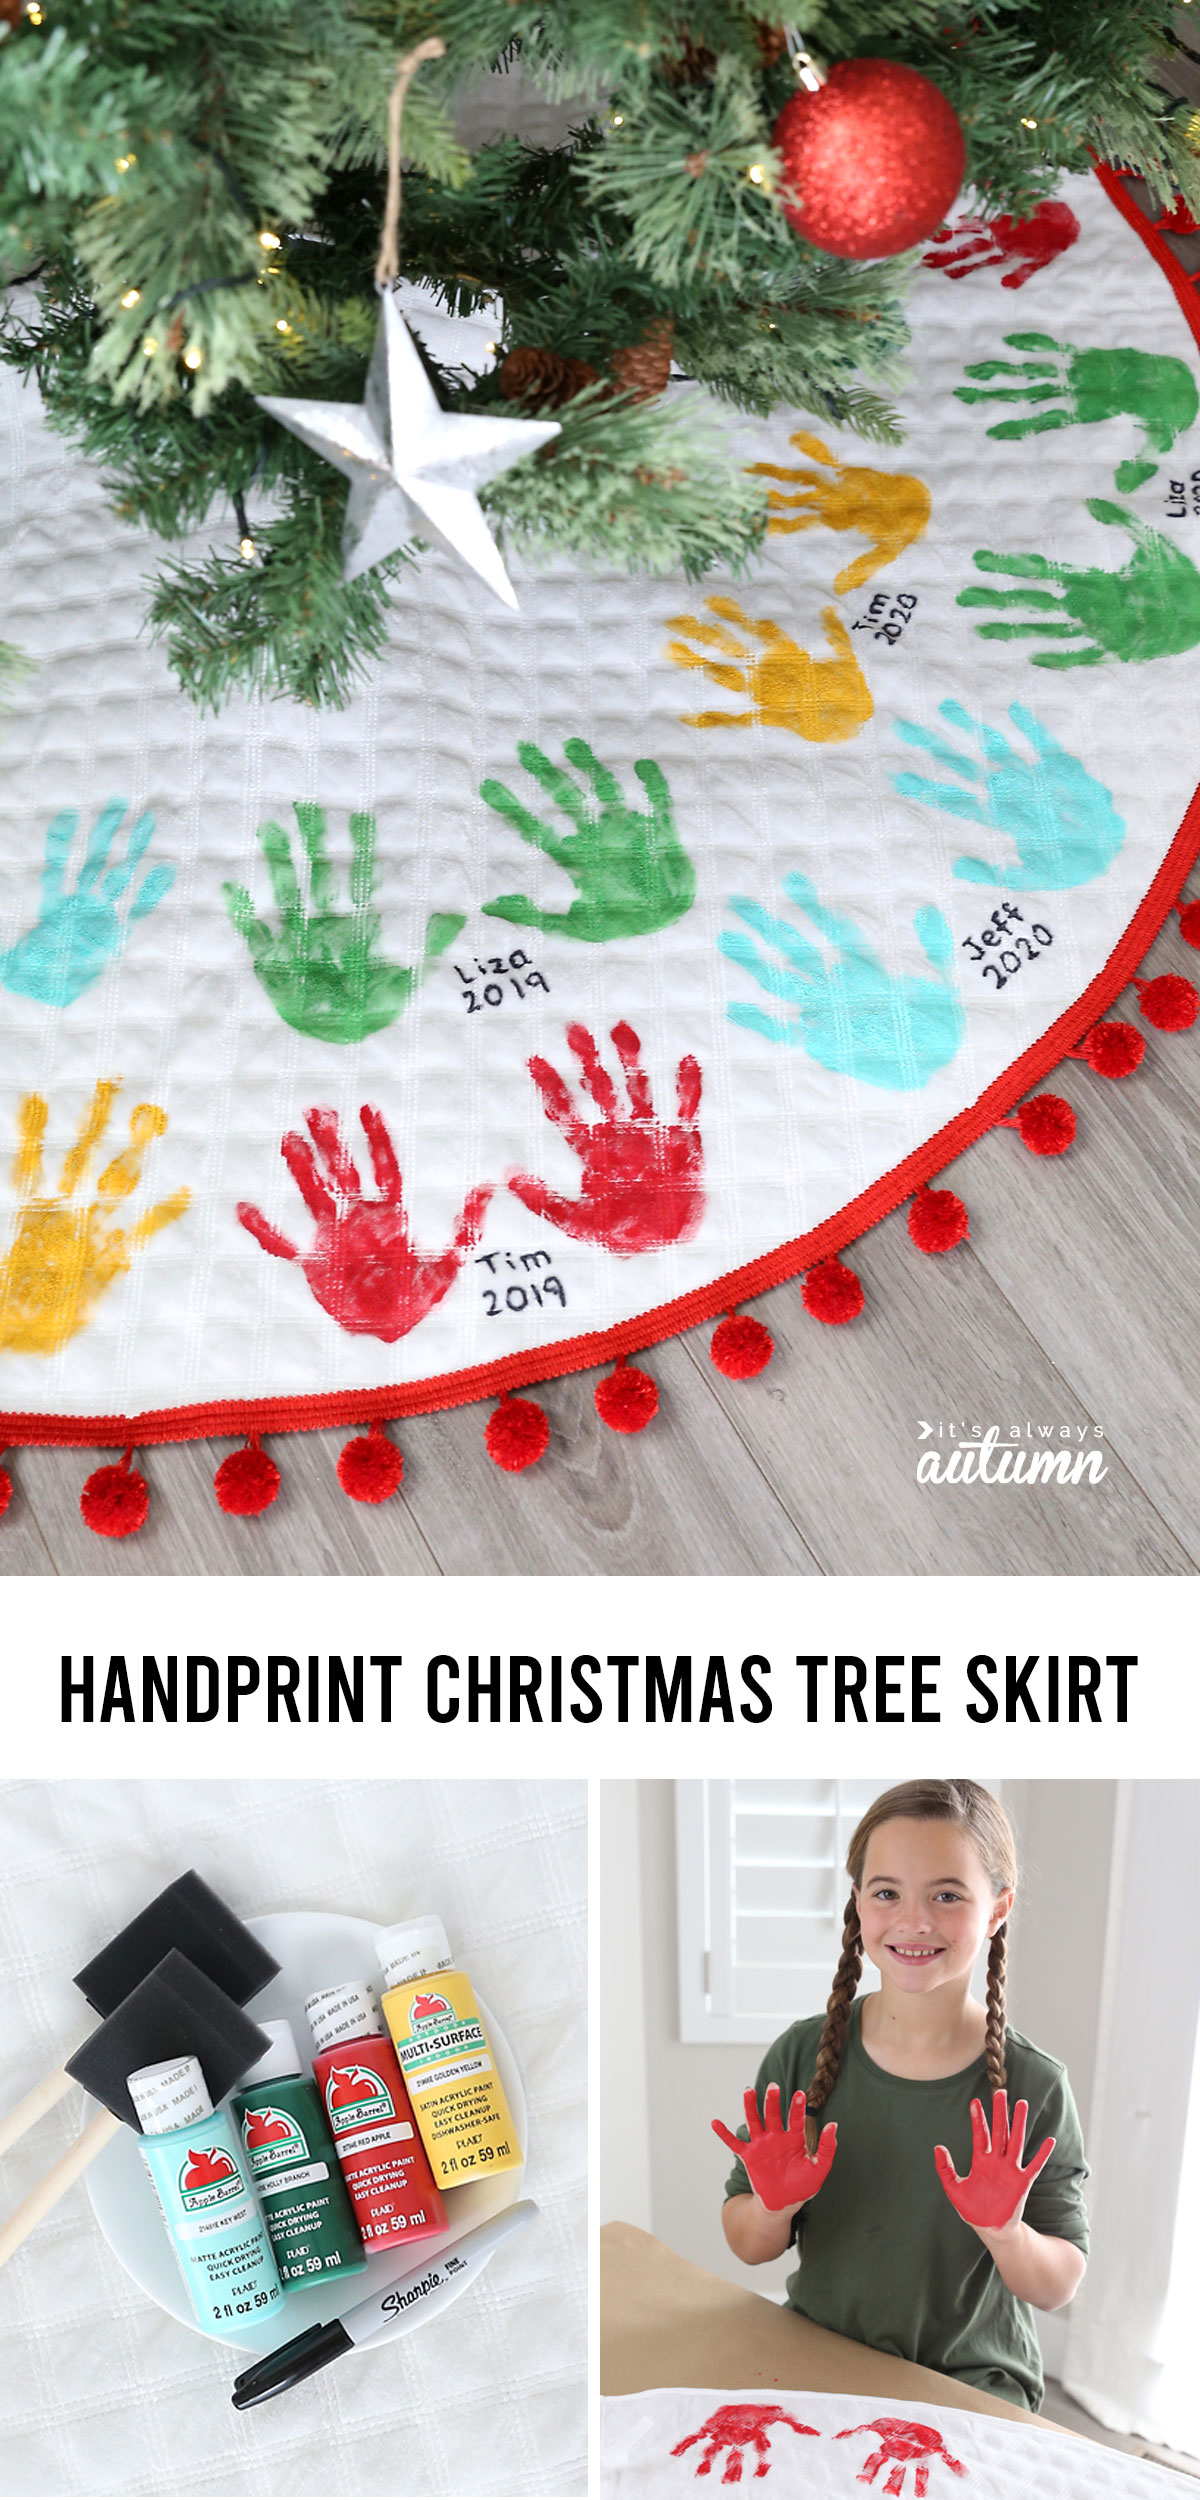 You can make this adorable handprint Christmas tree skirt and add to it every year!